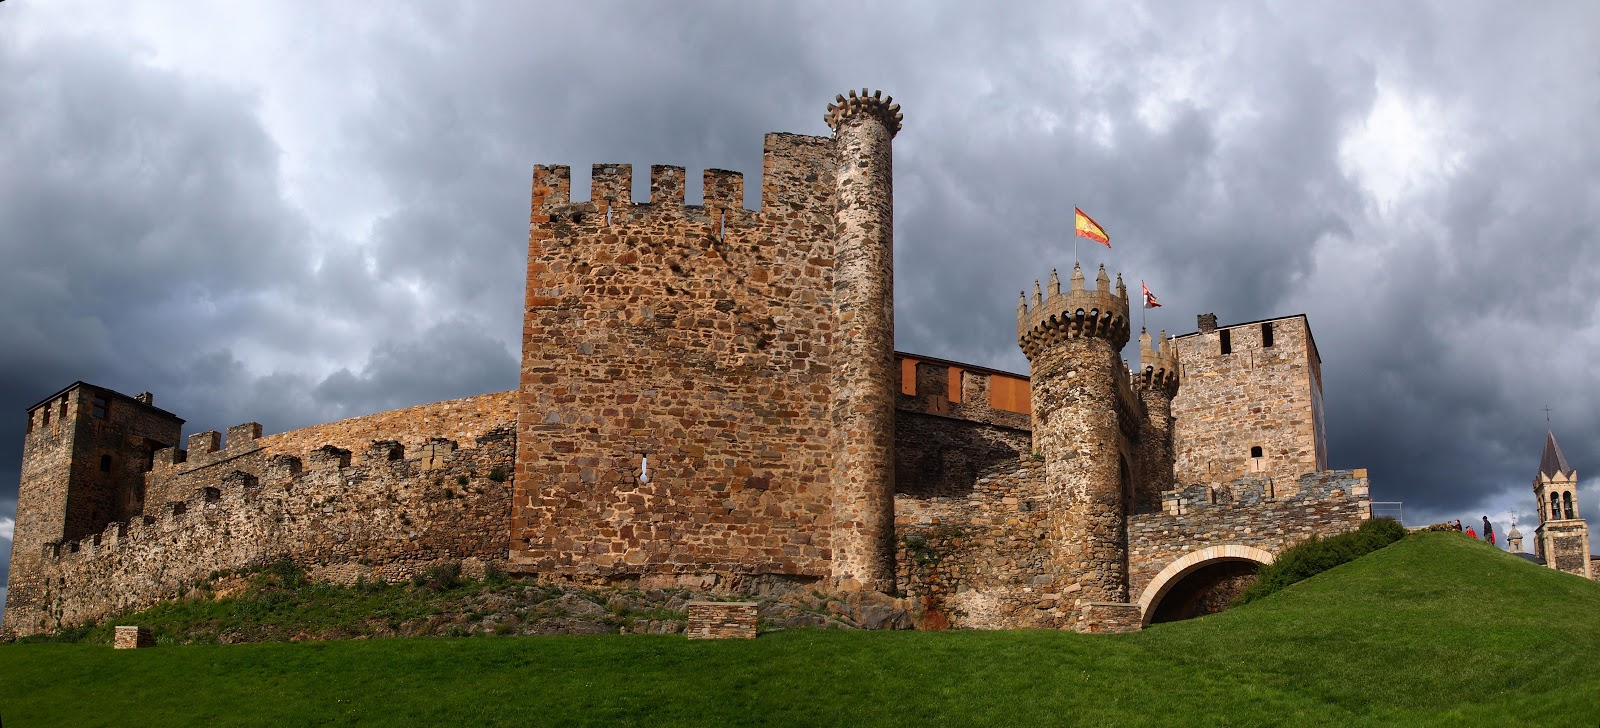 Castillo Templario de Ponnferrada or Templar Castle was built in the 12th century. Photo: © David 820 CC BY-SA 3.0 es from Wikimedia Commons.